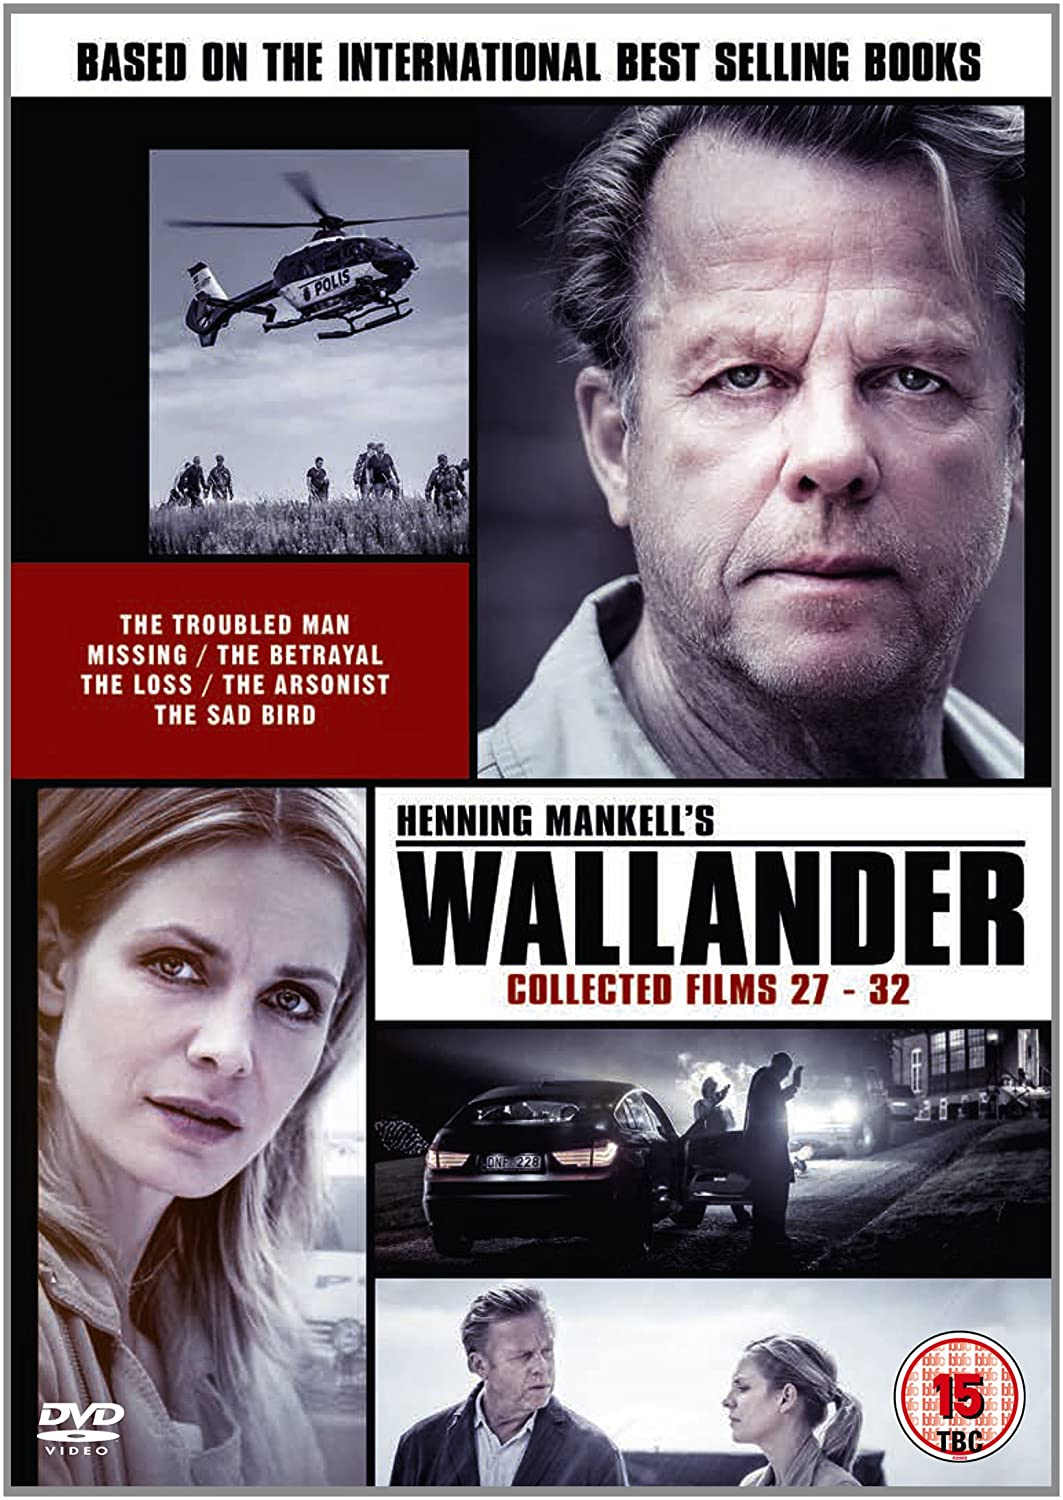 Wallander: Collected Films 27-32 (UK link)